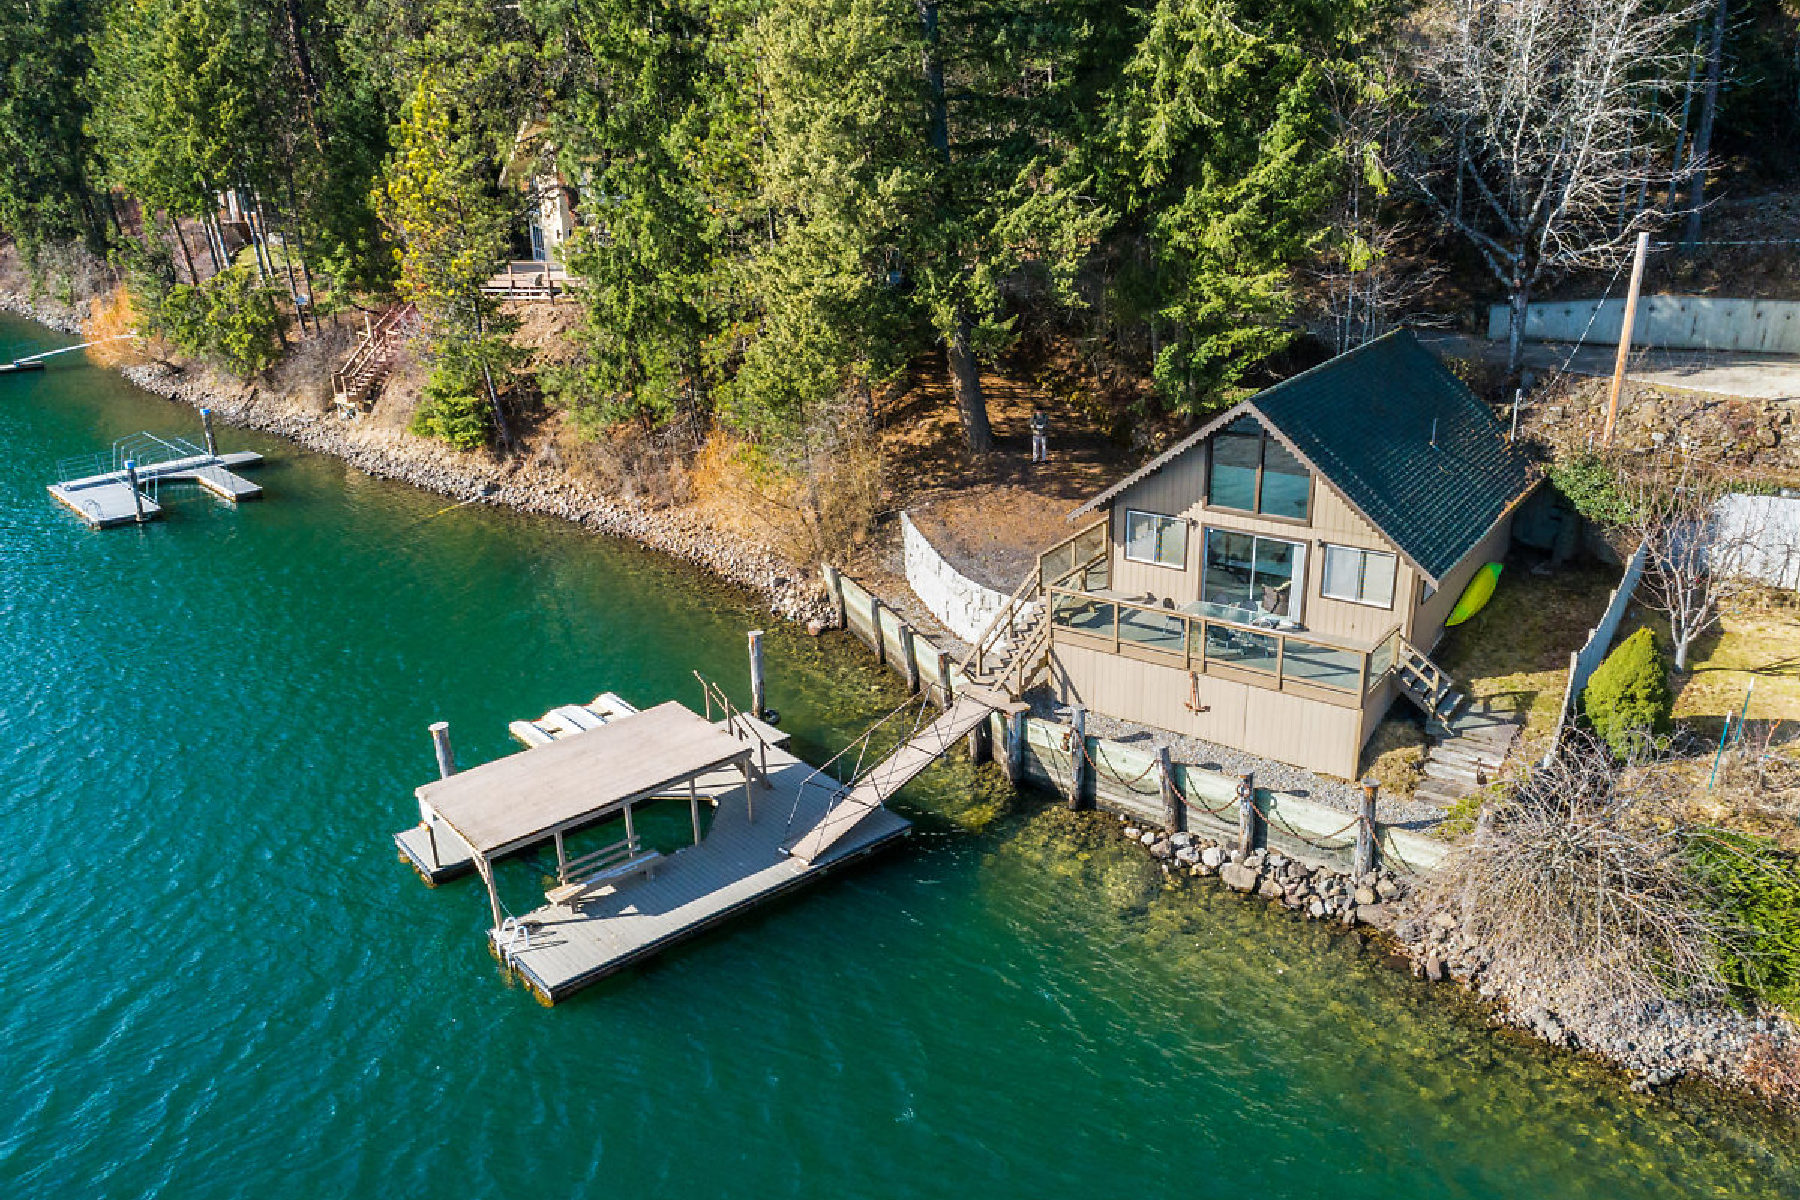 Single Family Homes for Active at CHARMING HAYDEN LAKE WATERFRONT CABIN 6673 E Deep Shadow Hayden, Idaho 83835 United States